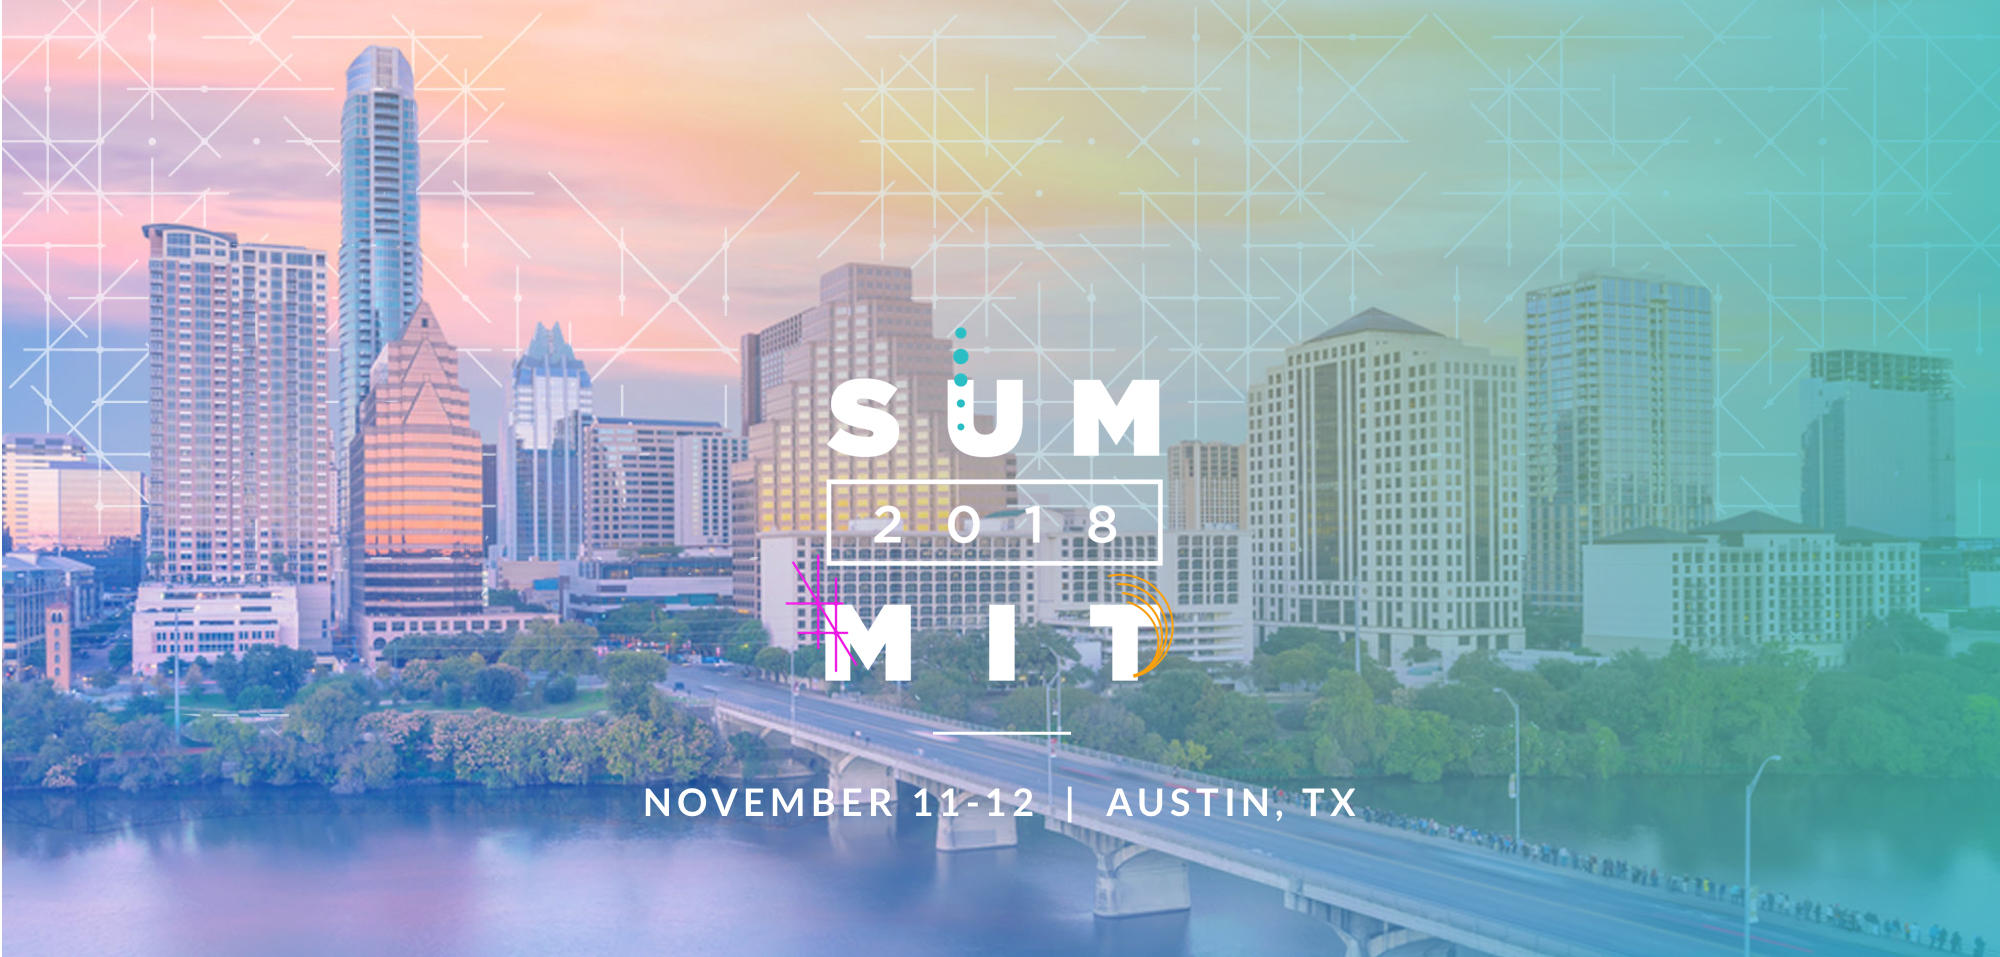 Homeaway Partner Summit Theater Structured Wiring Home Networking Orlando Central Florida Sun